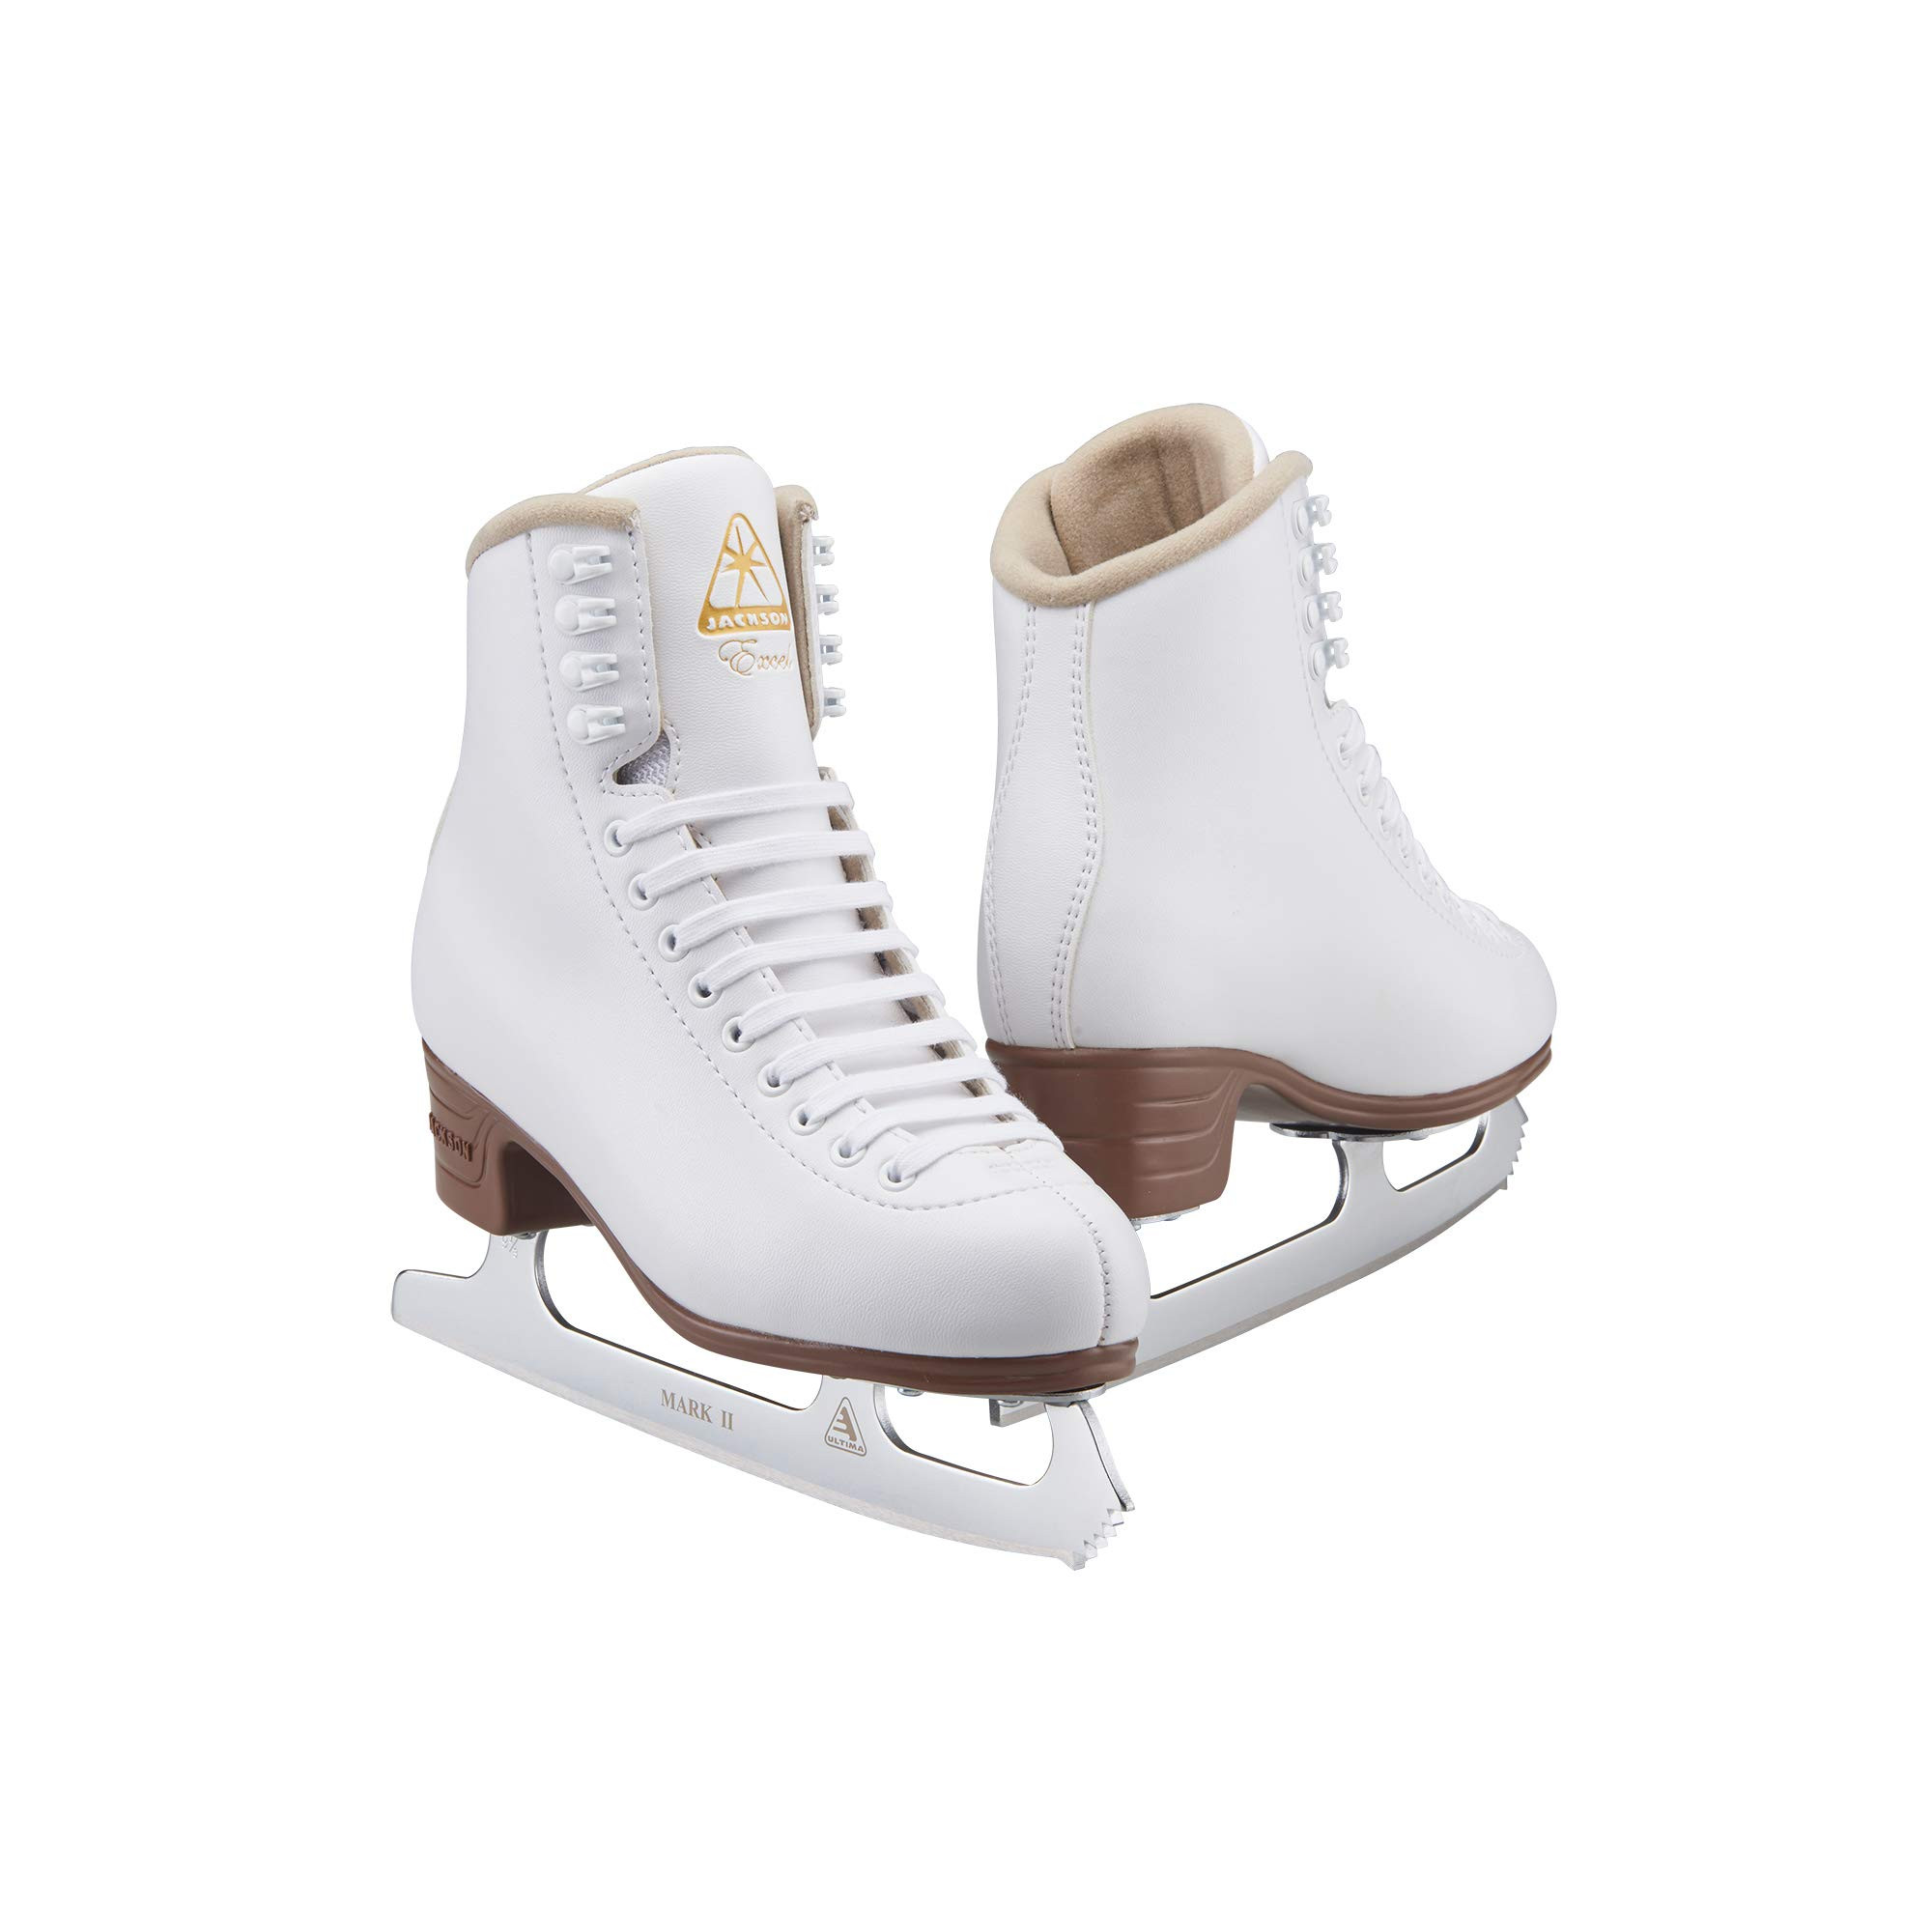 JACKSON ULTIMA Women's/Misses/Tot's Excel Vinyl Upper Lace Up Light Support Figure Ice Skates